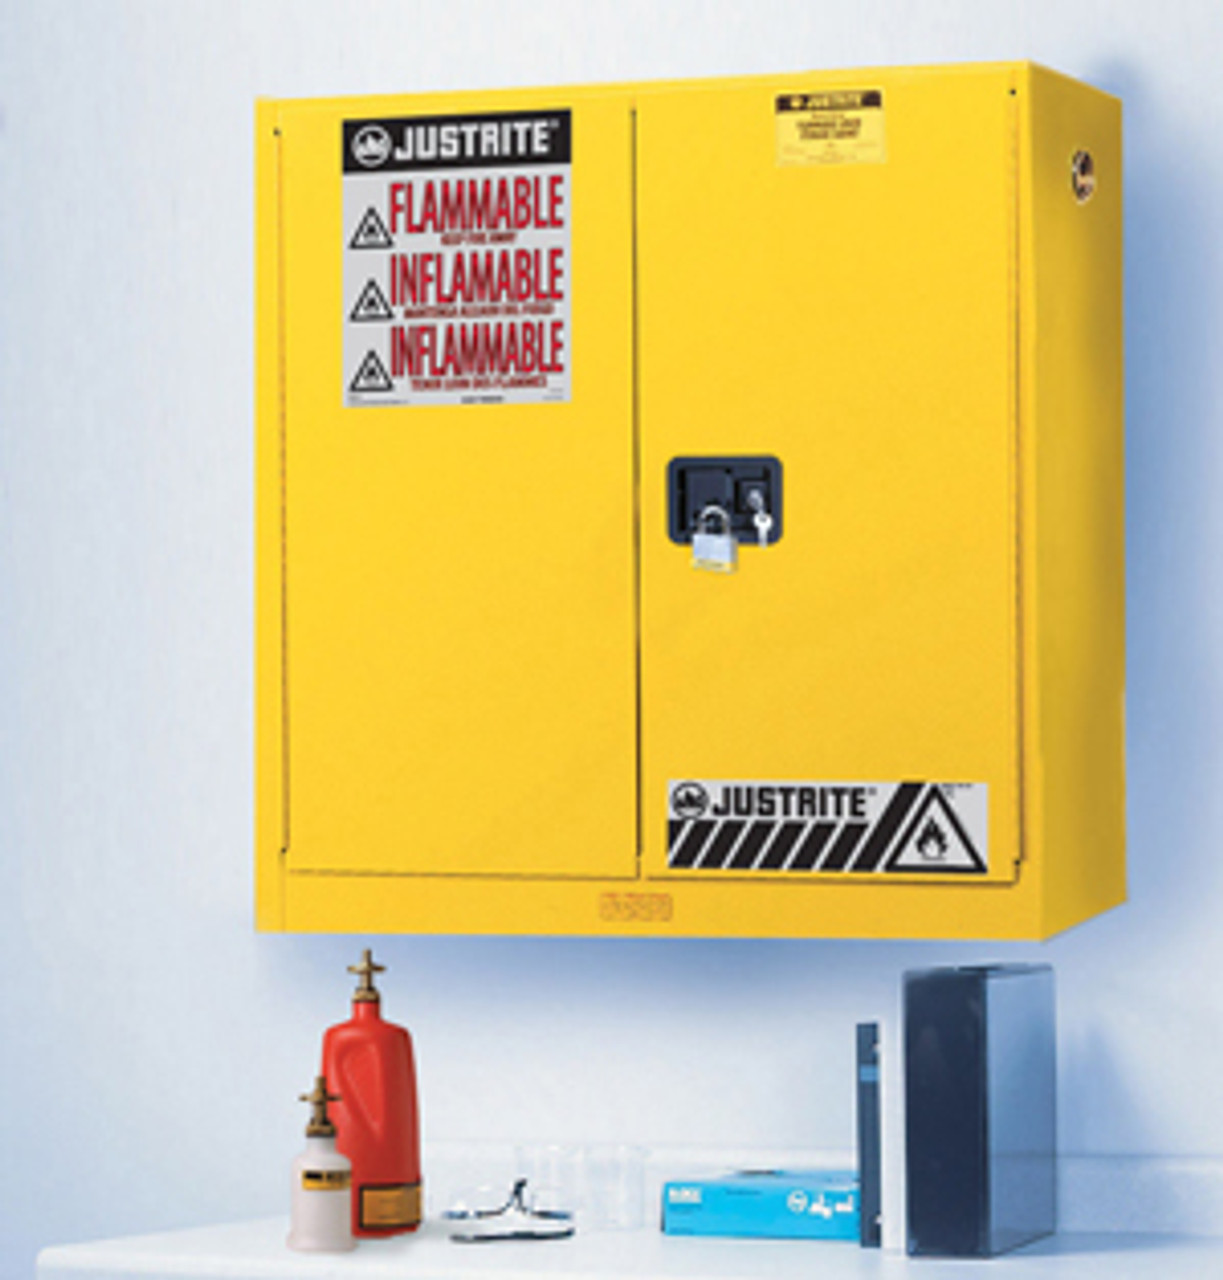 Justrite Wall Mount Flammable Safety Cabinets